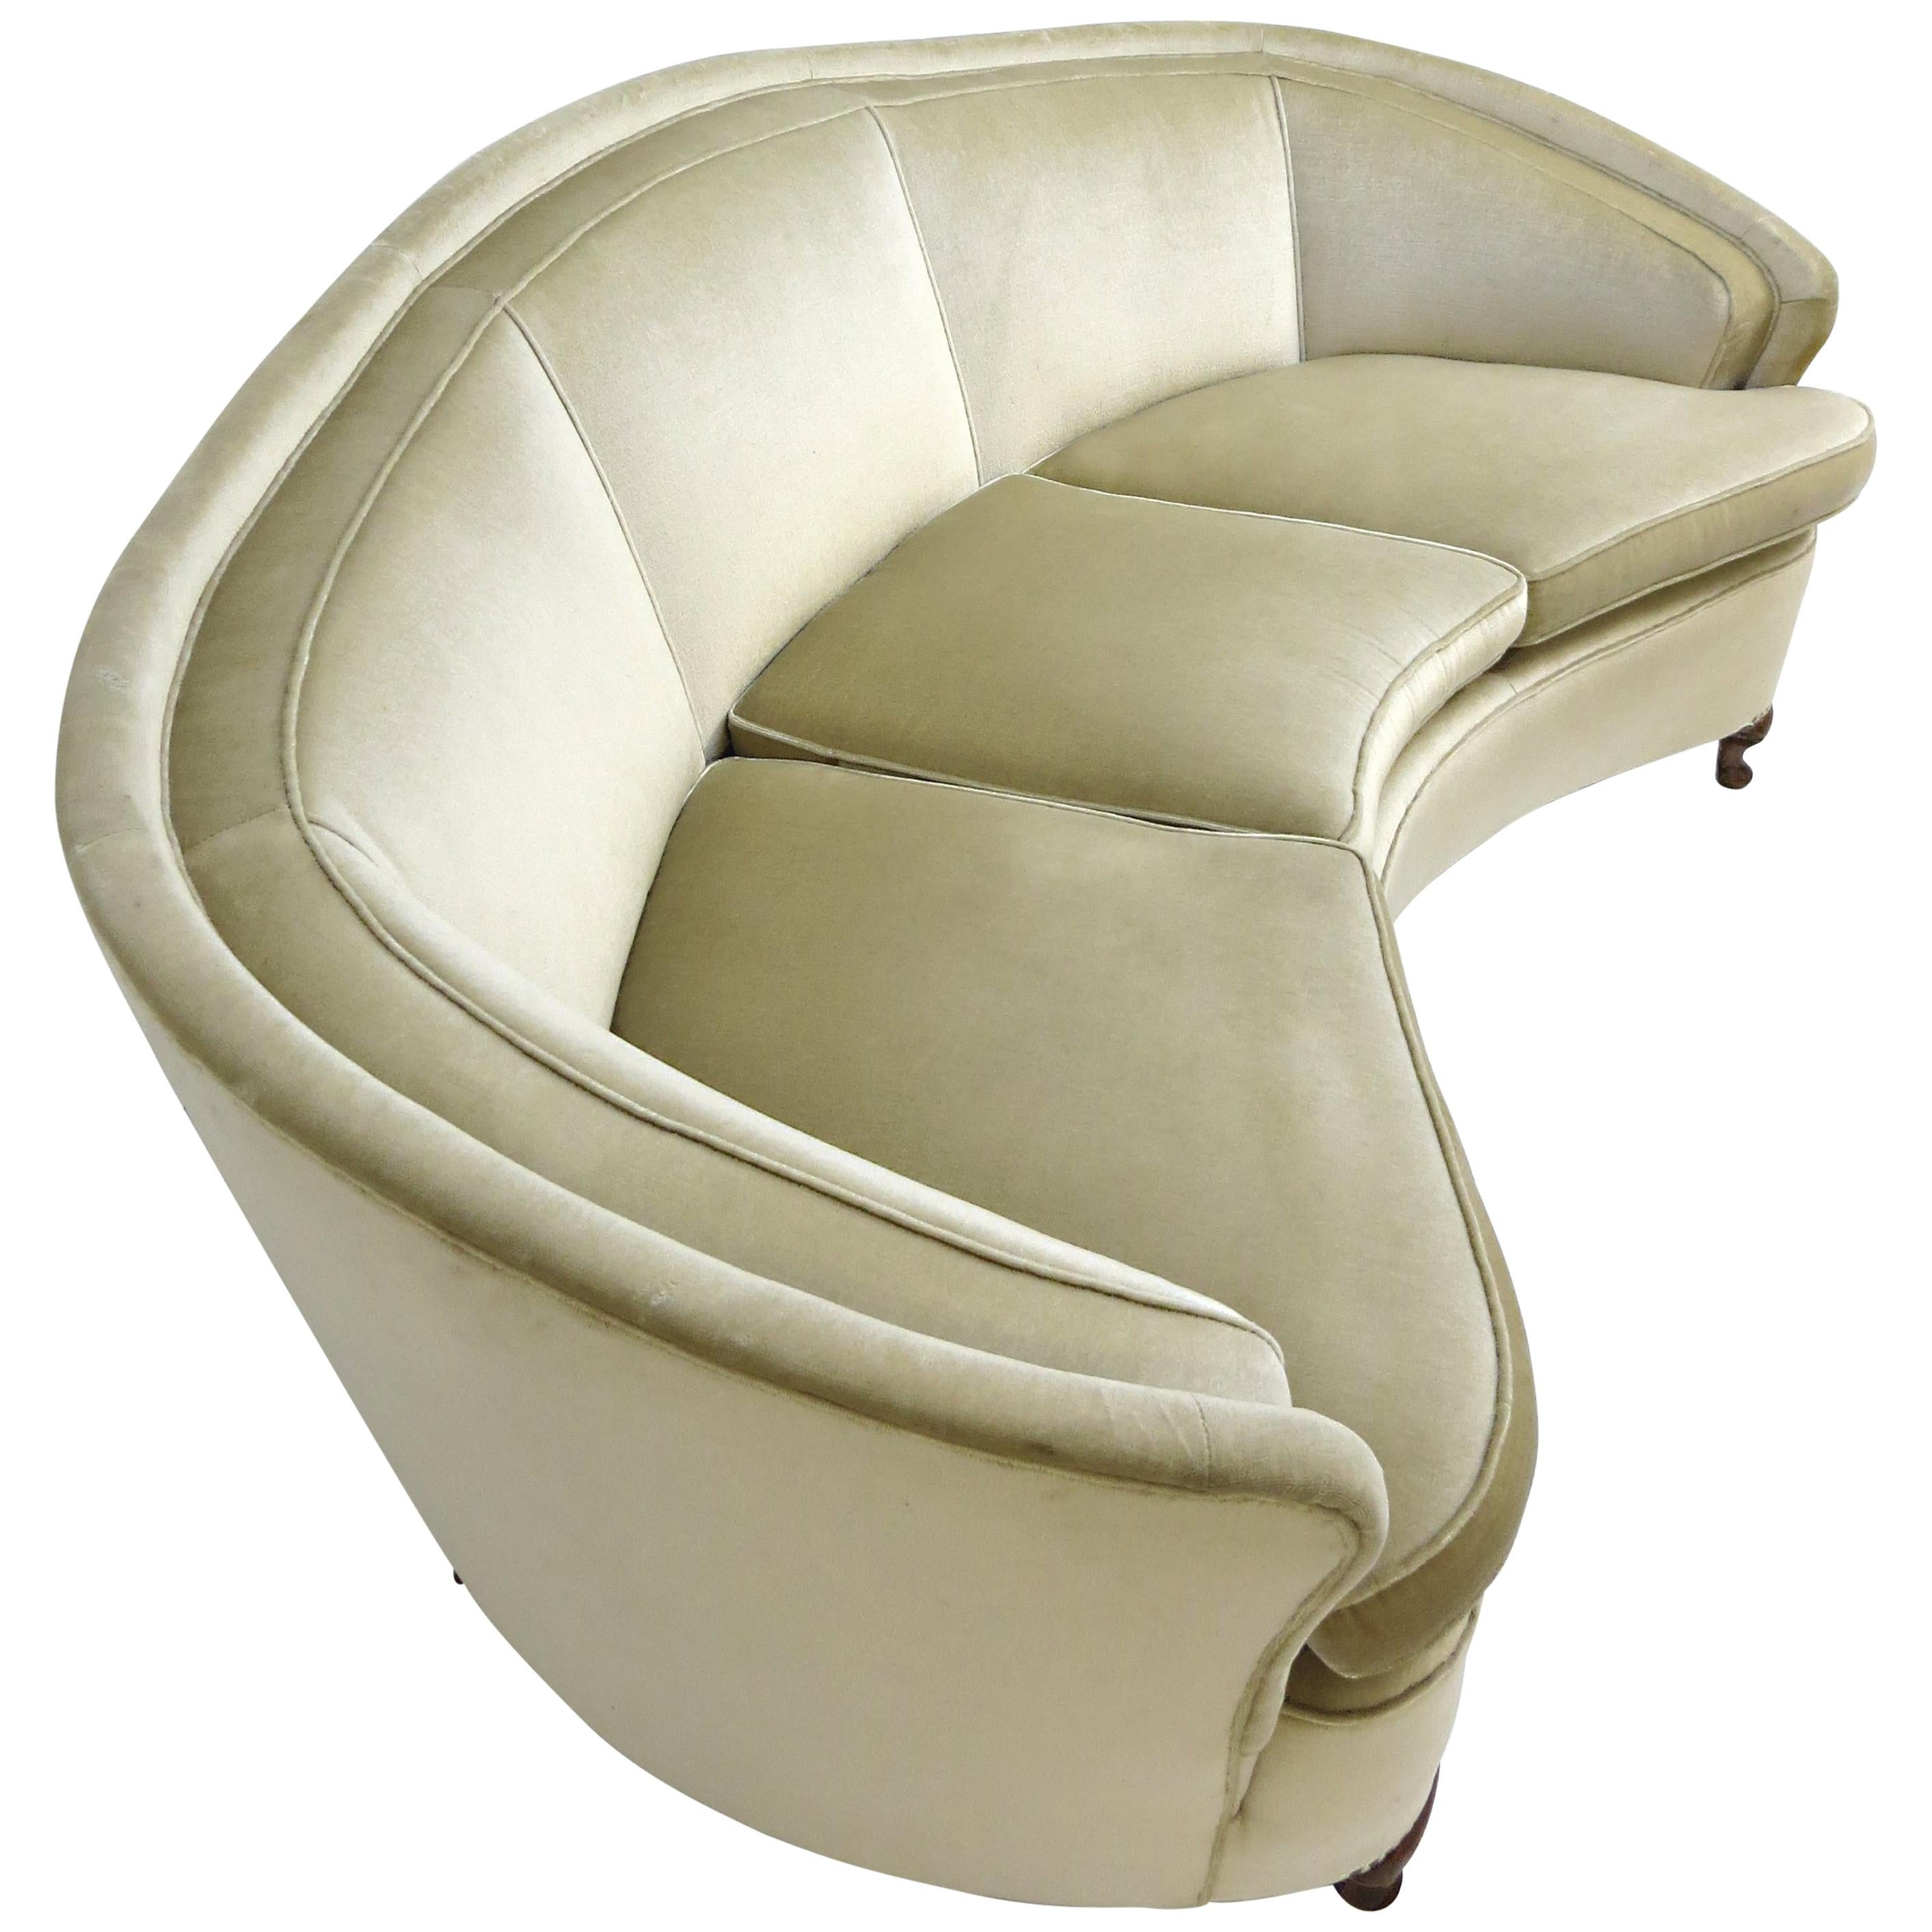 1940s italian modern curved vintage design sofa in beige velvet velour 3 seater for sale at 1stdibs